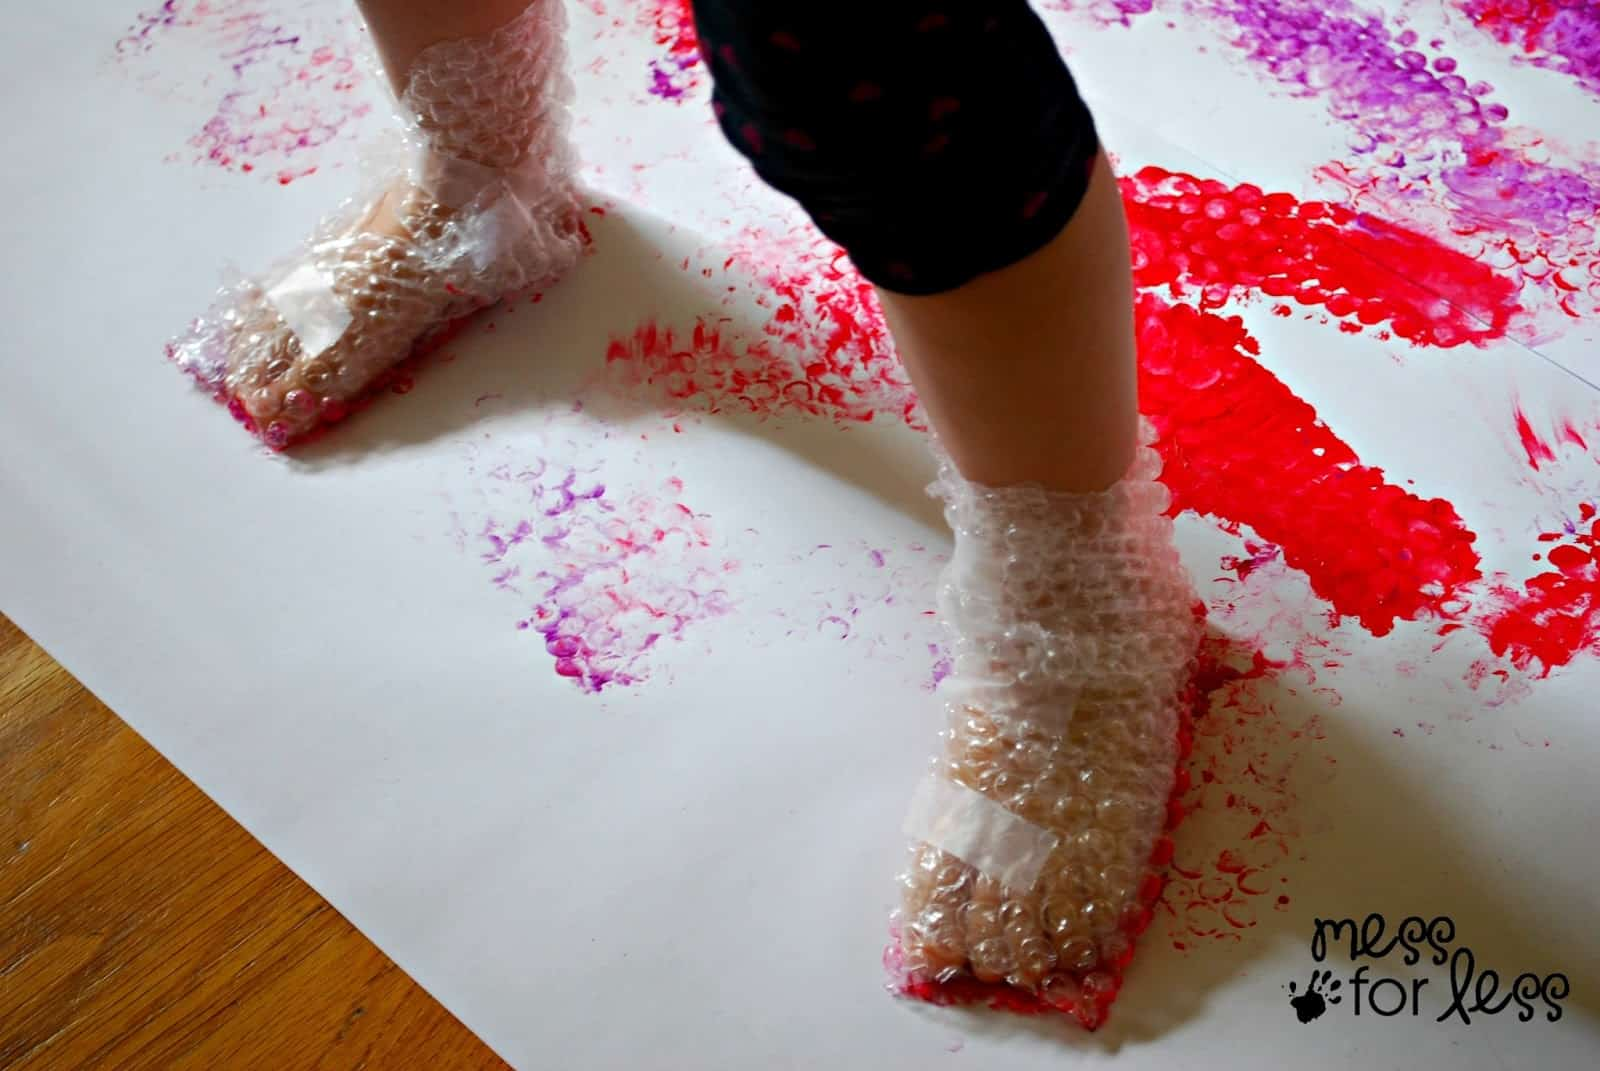 Bubble wrap stomp painting mess for less for Painting projects